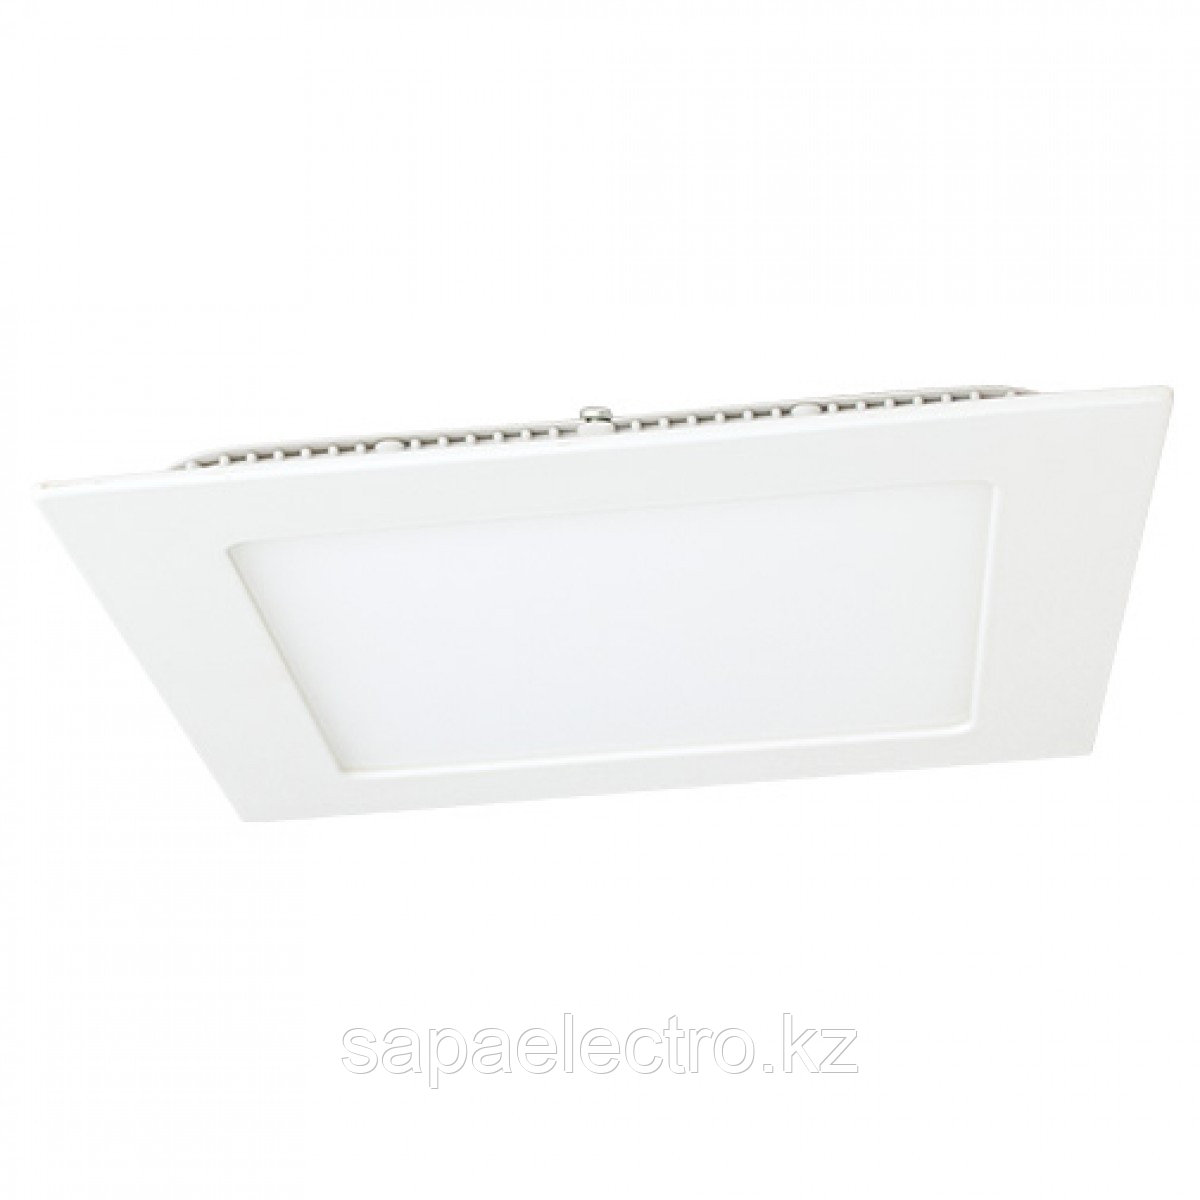 Свет-к DL LED KVADRO PANEL 24W 3000K (TS) 20шт